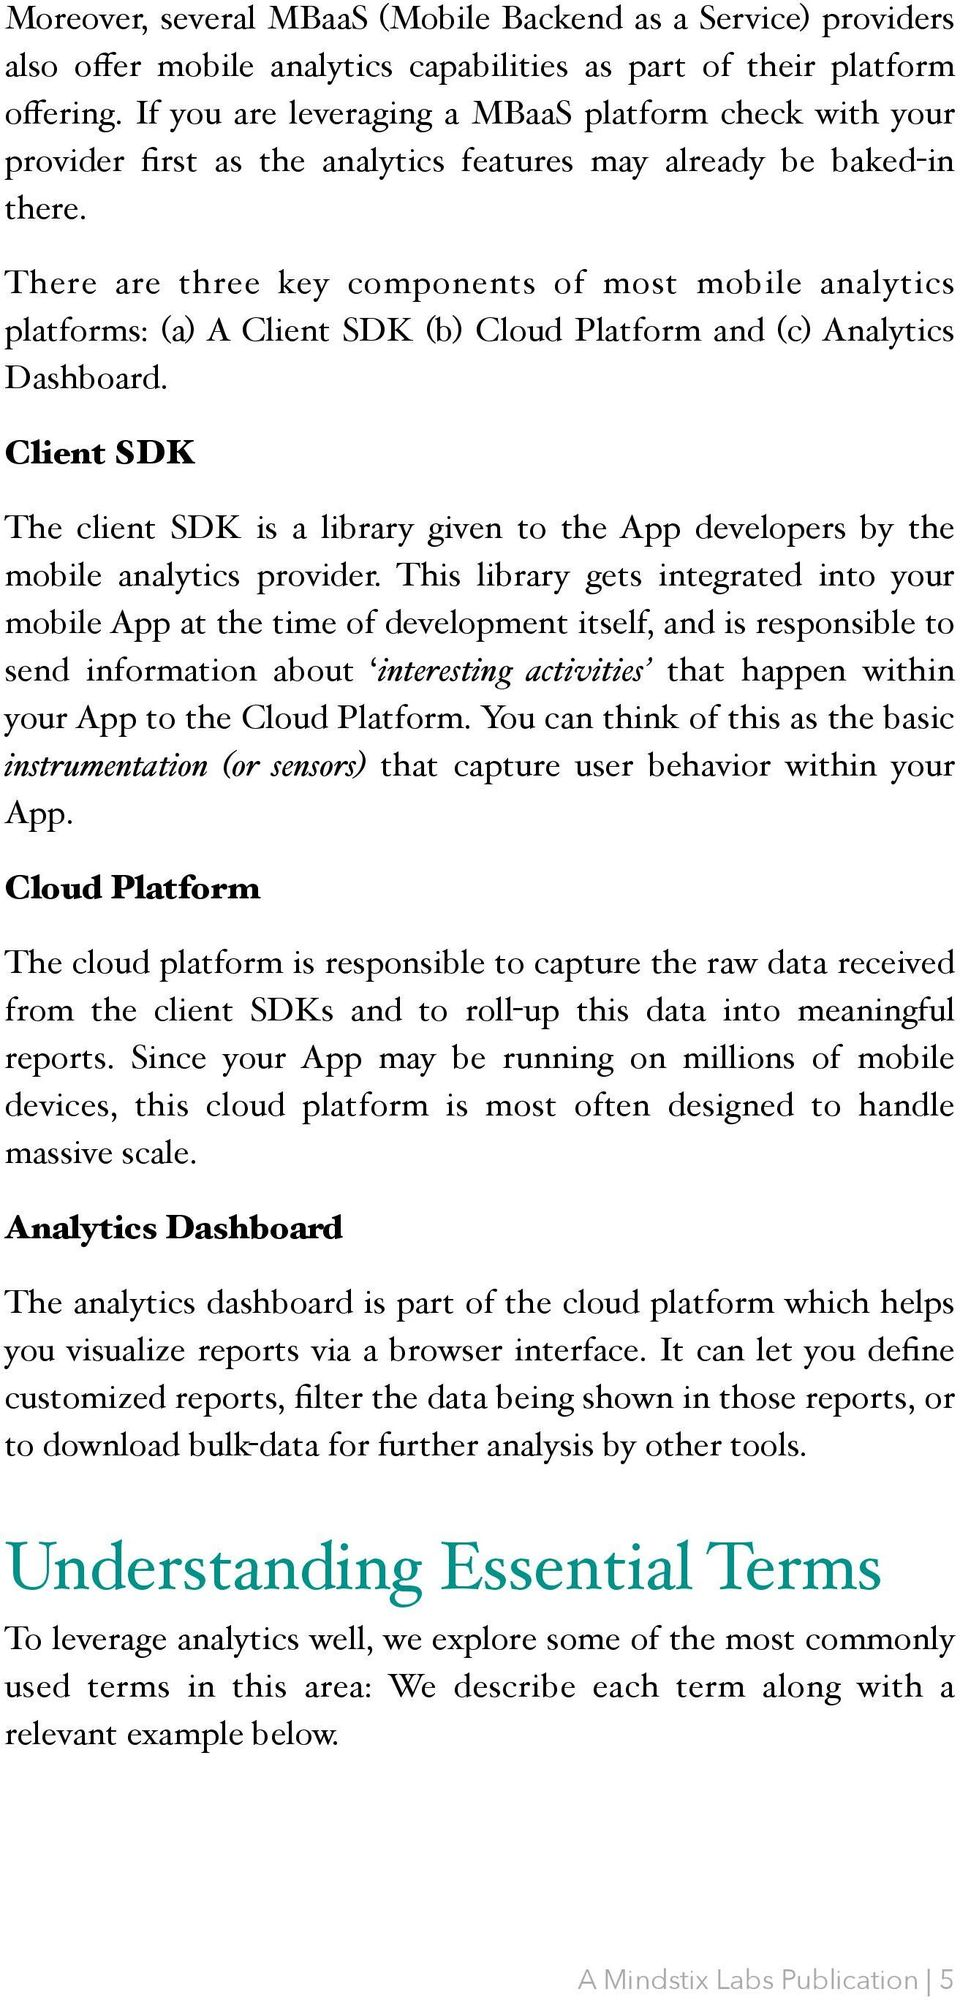 There are three key components of most mobile analytics platforms: (a) A Client SDK (b) Cloud Platform and (c) Analytics Dashboard.